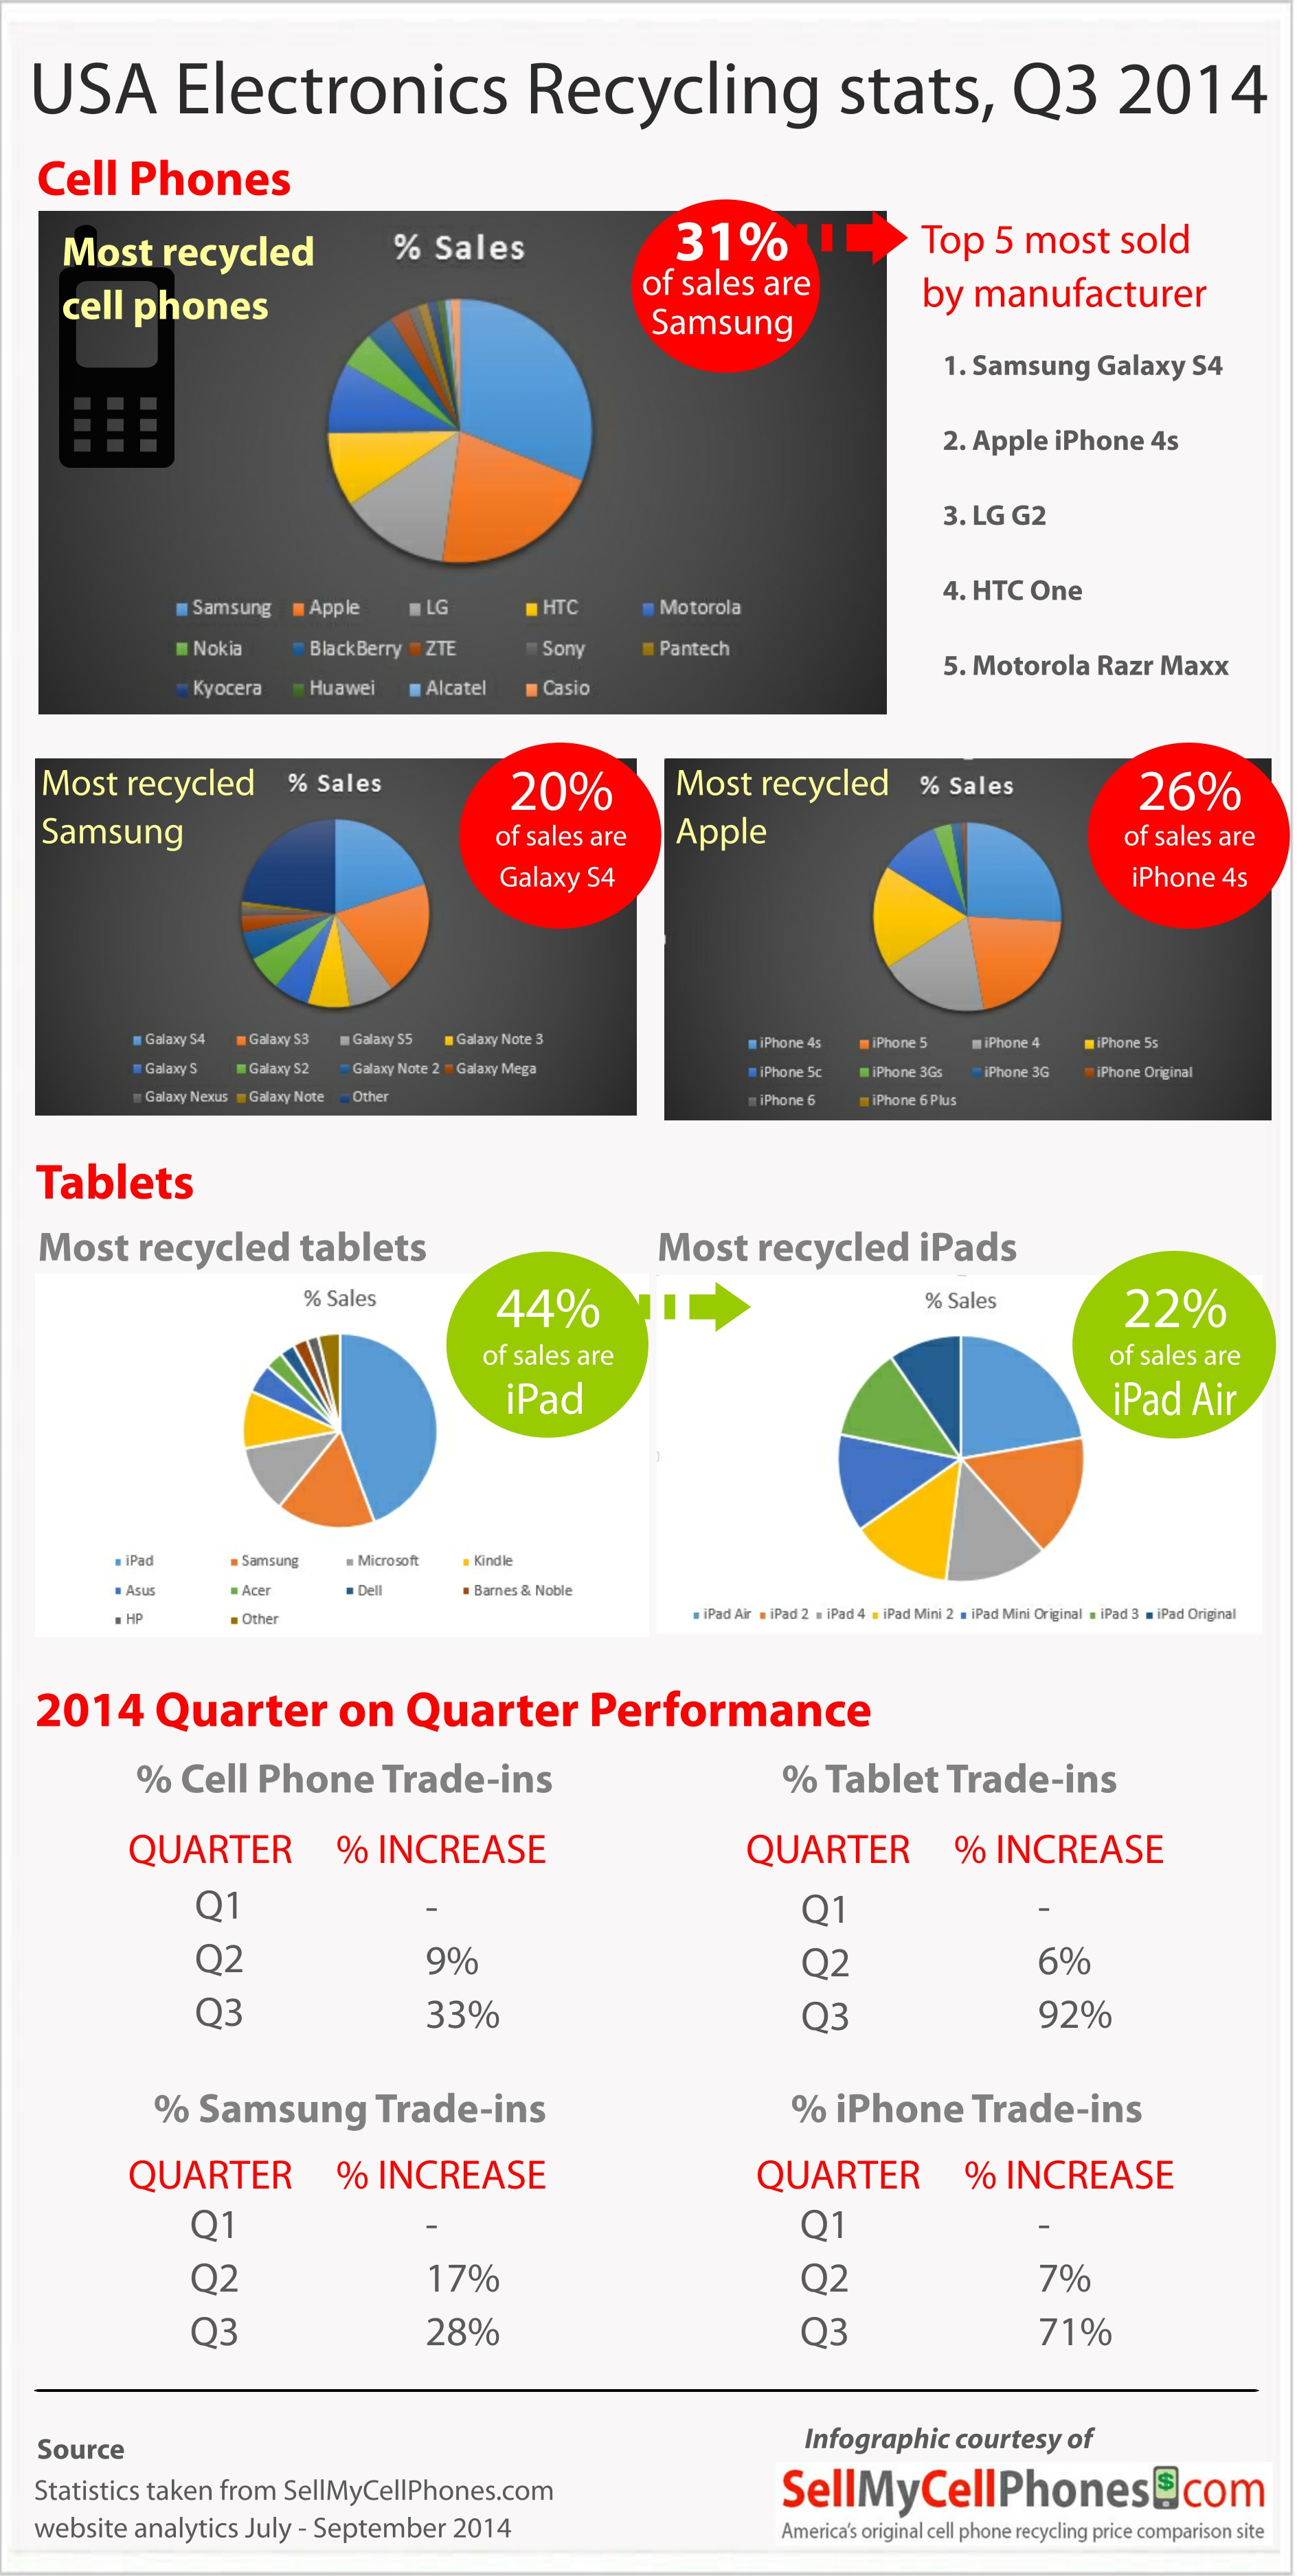 USA Electronics and Phone Recycling Industry stats Q3 2014 Infographic